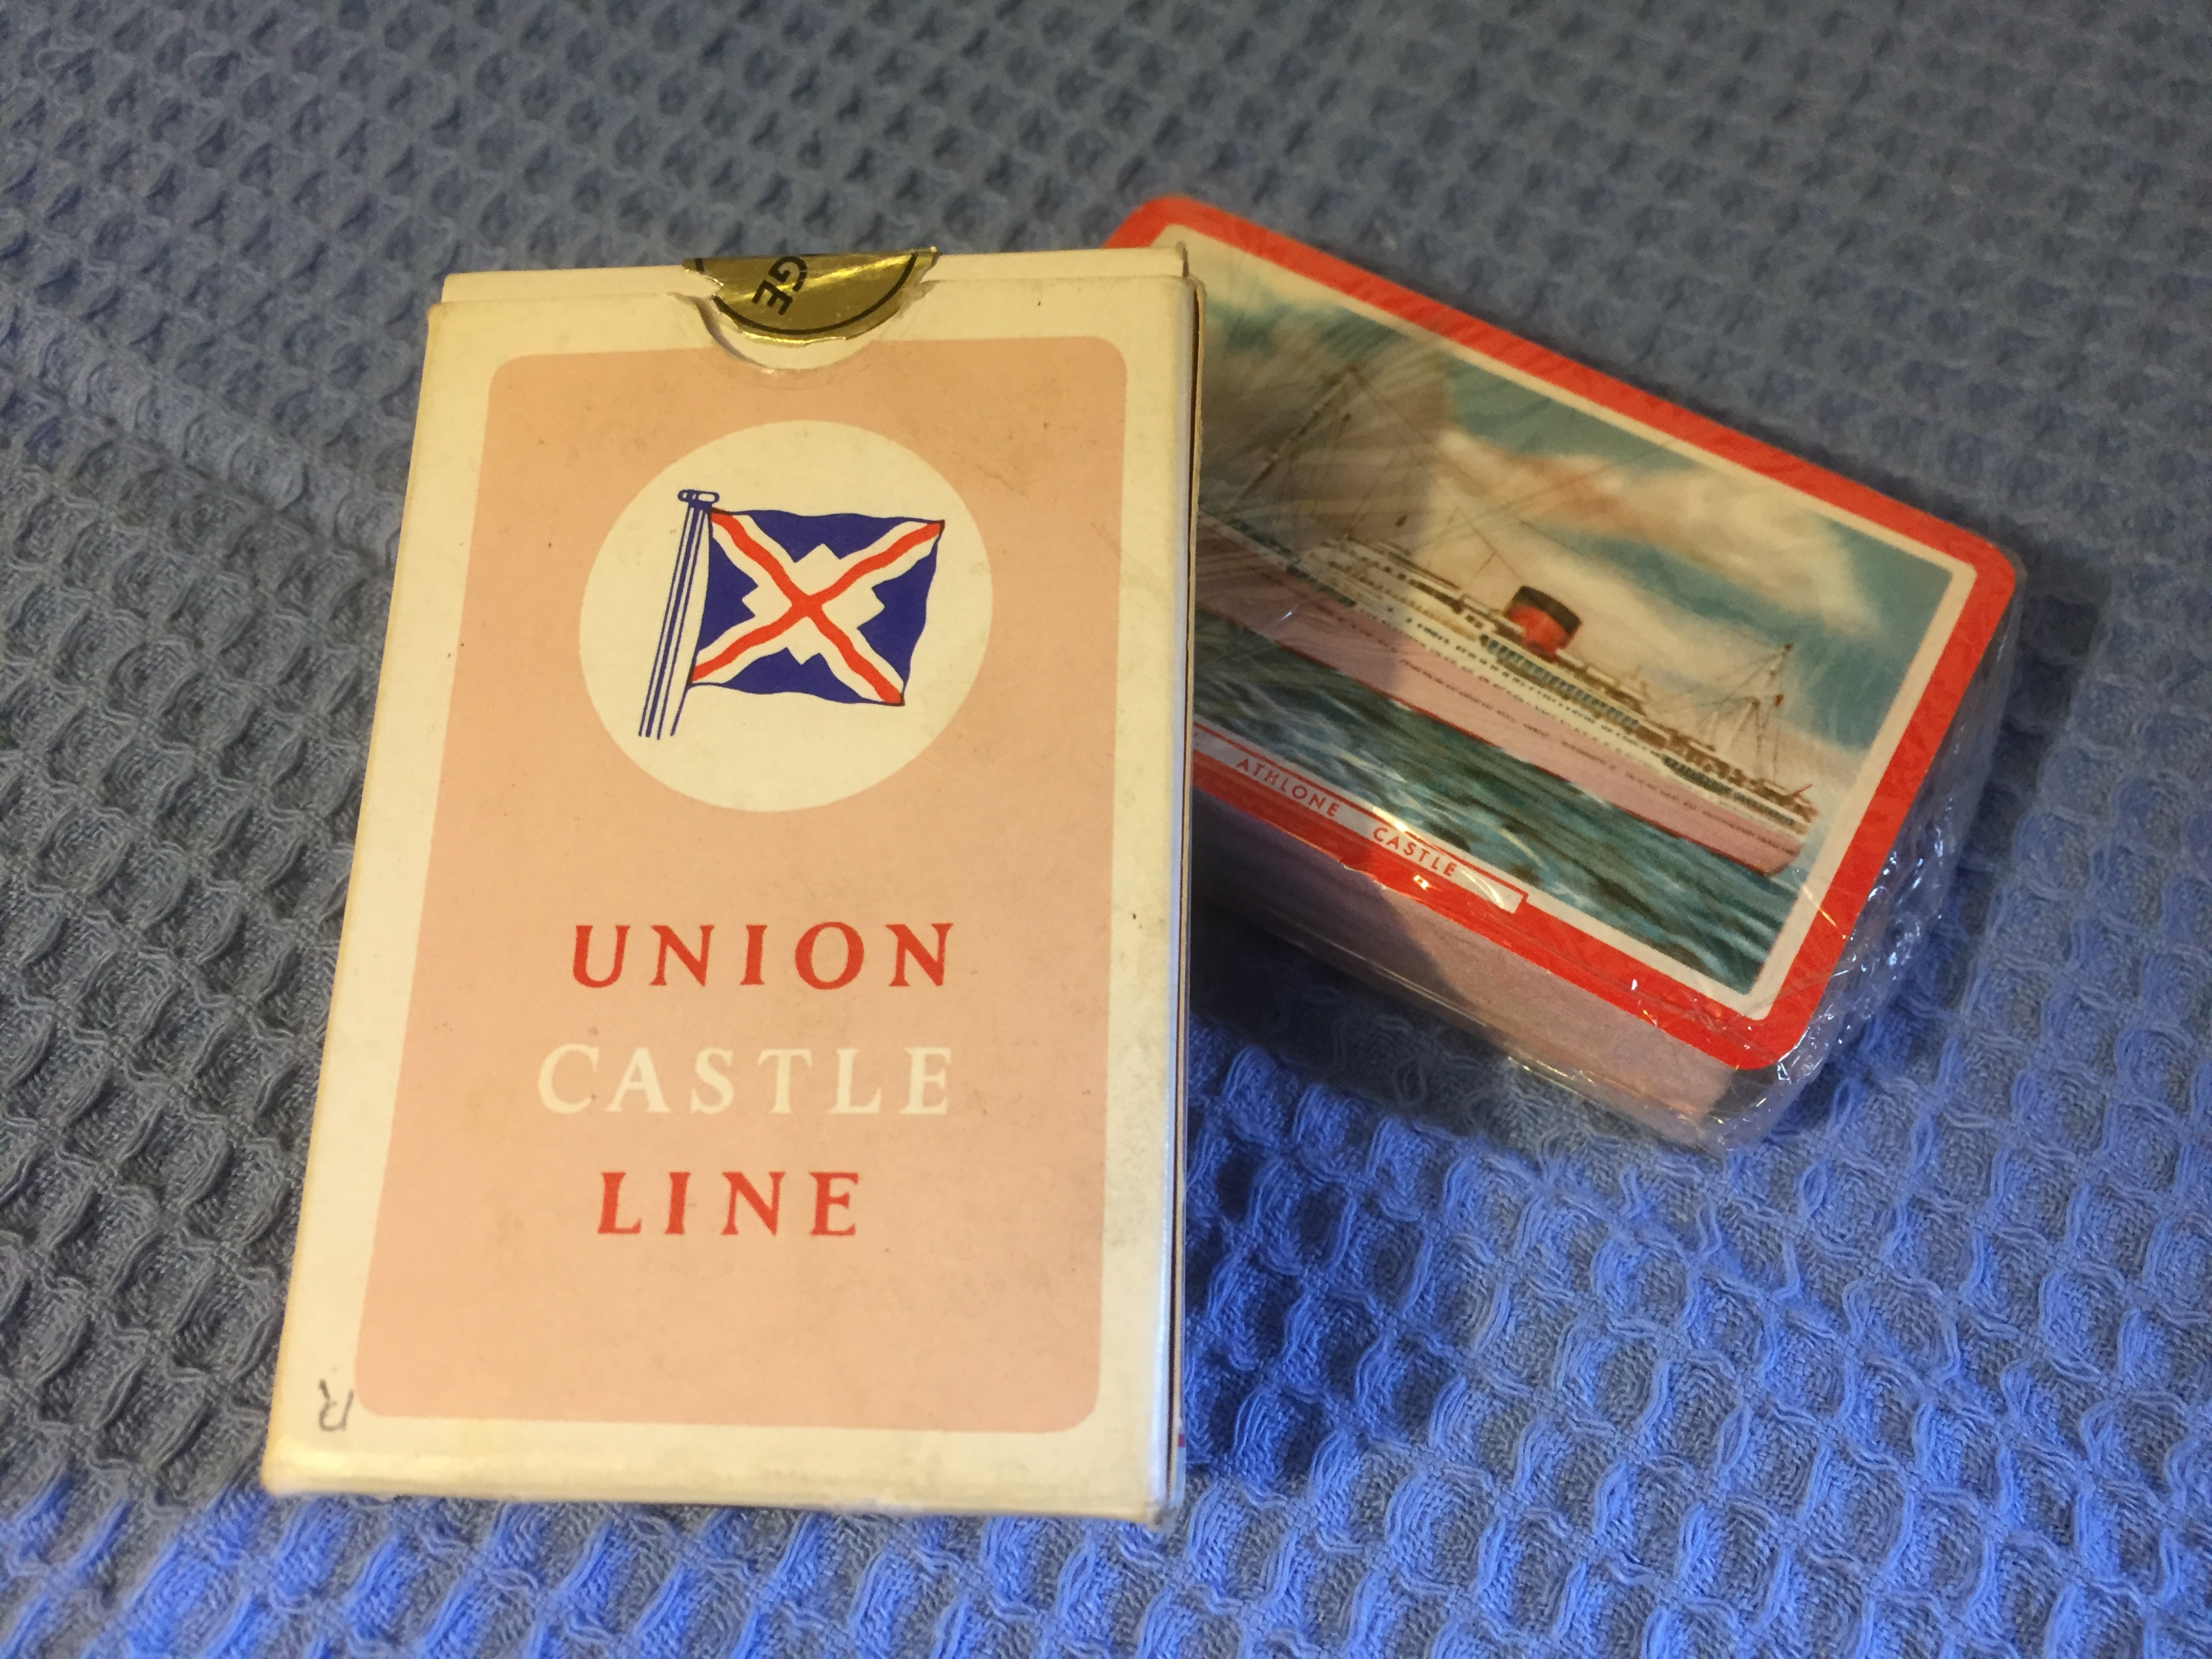 UNOPENED AND UNUSED UNION CASTLE LINE PLAYING CARDS FROM THE VESSEL THE ATHLONE CASTLE